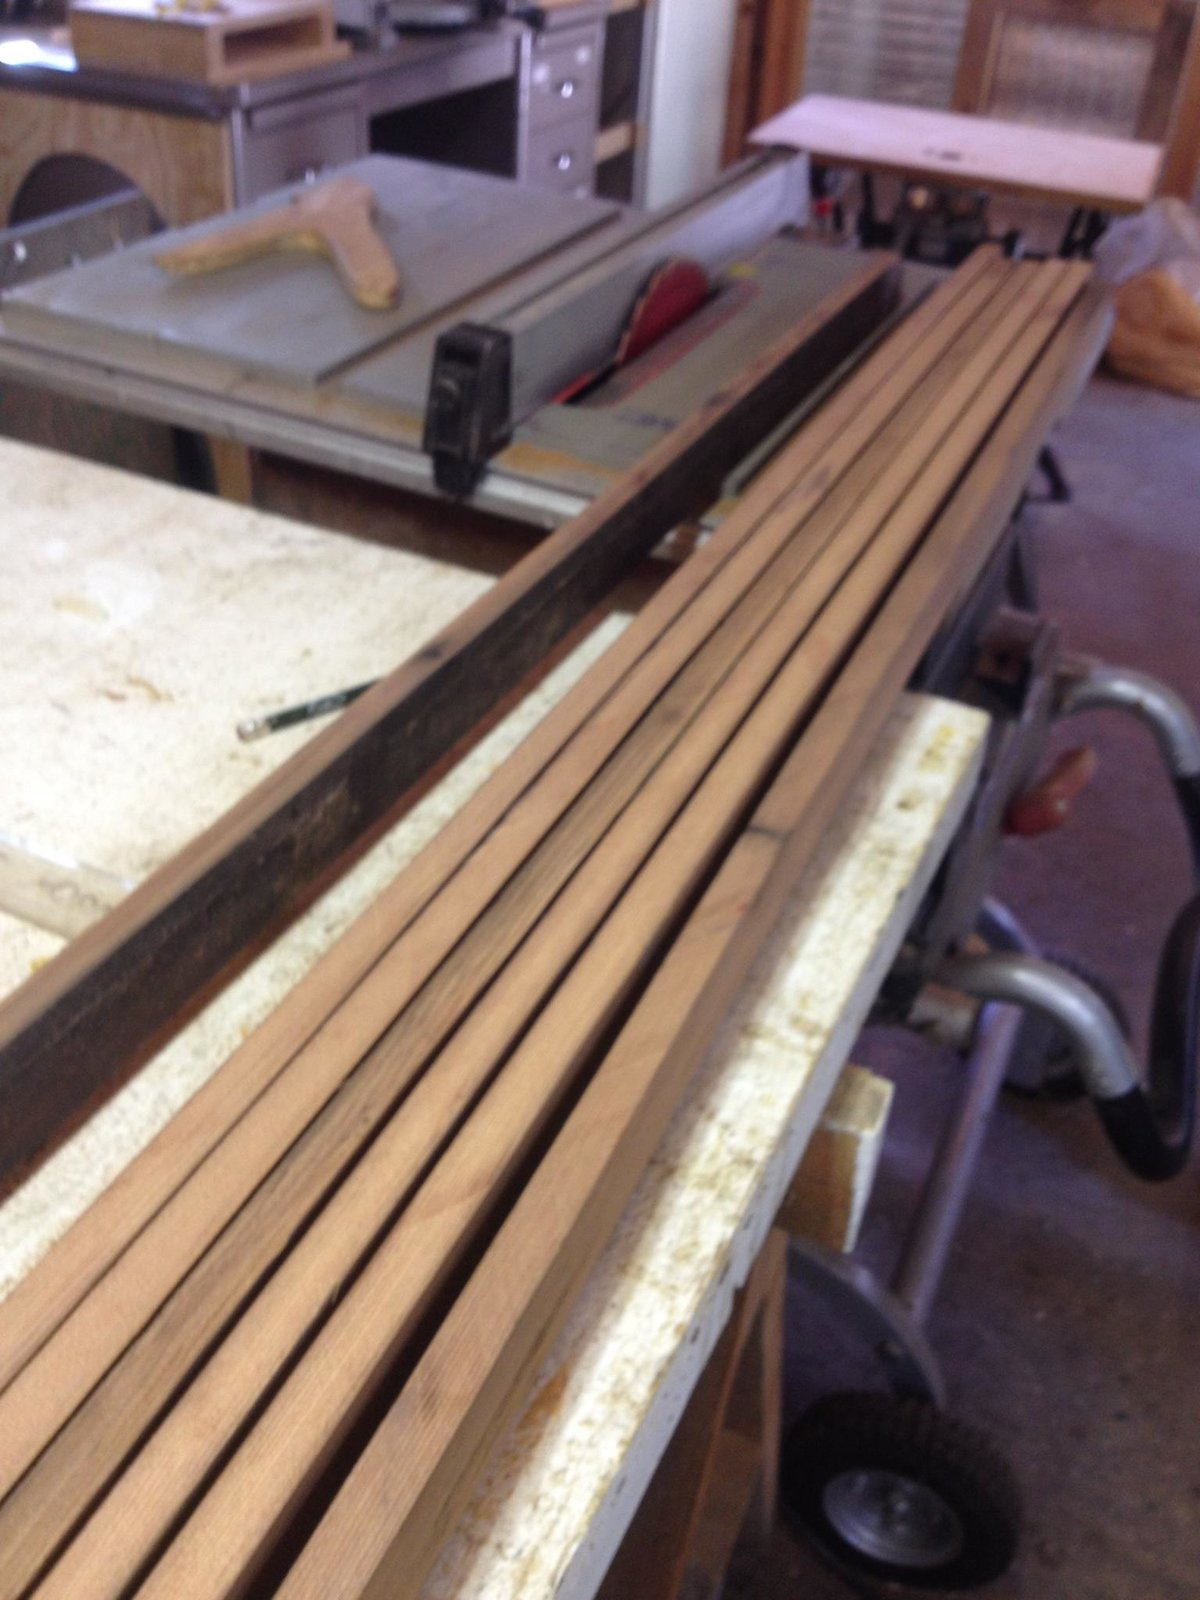 Once clean, planks were re-sawn on a table saw to get about 2 inch wide strips, then re-sawn again so that they were about a quarter inch thick.  Photo 5 of 26 in Crafting a Hollow Wood Surfboard from Old-Growth Redwood